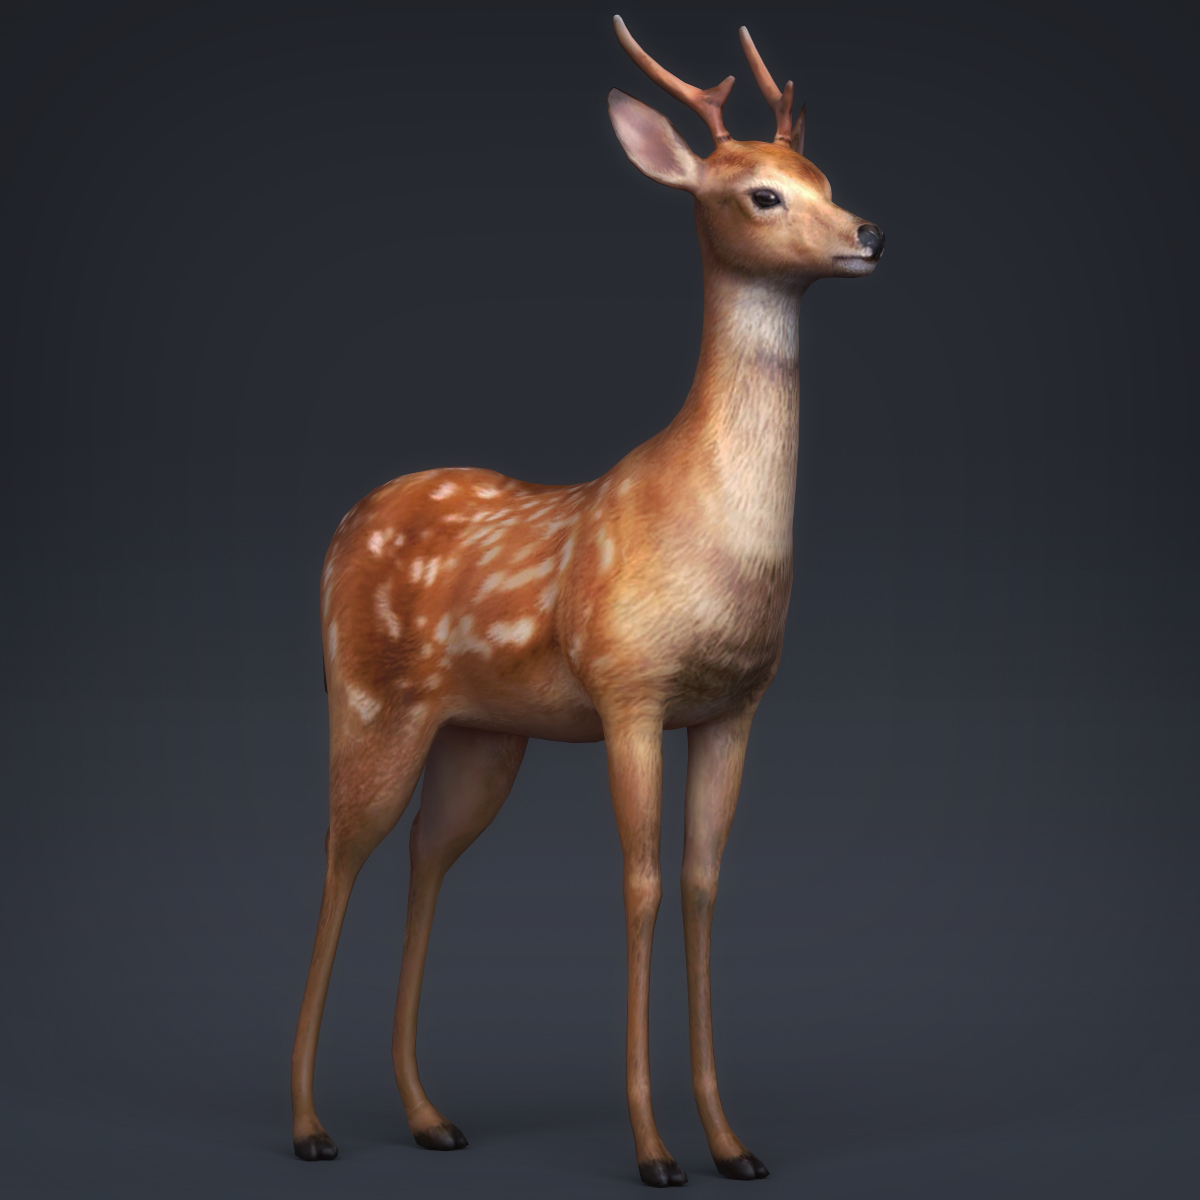 low poly realistic deer 3d model max fbx c4d ma mb obj 223715